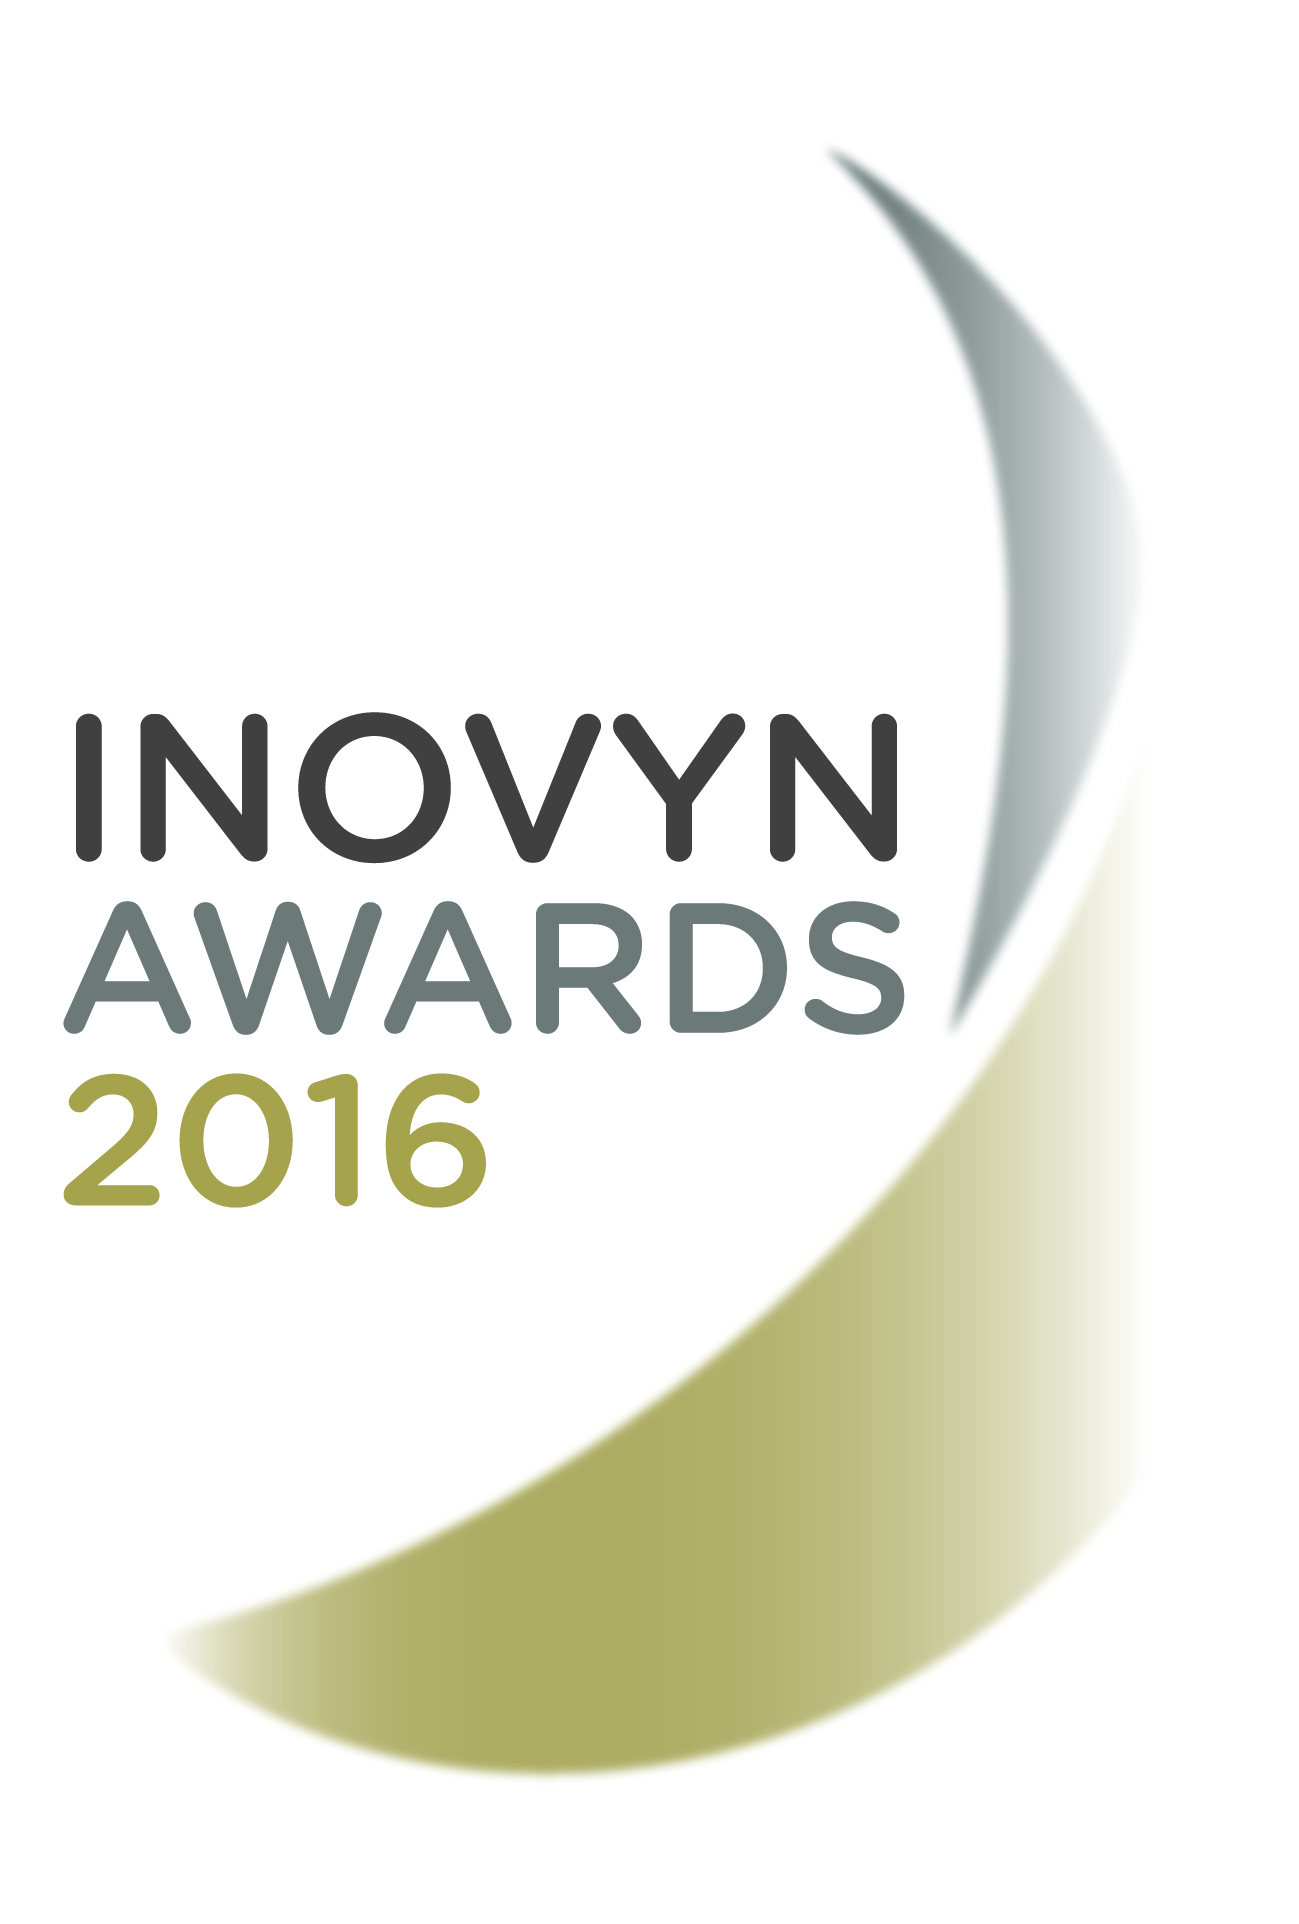 Inovyn Launches 'Inovyn Awards 2016′